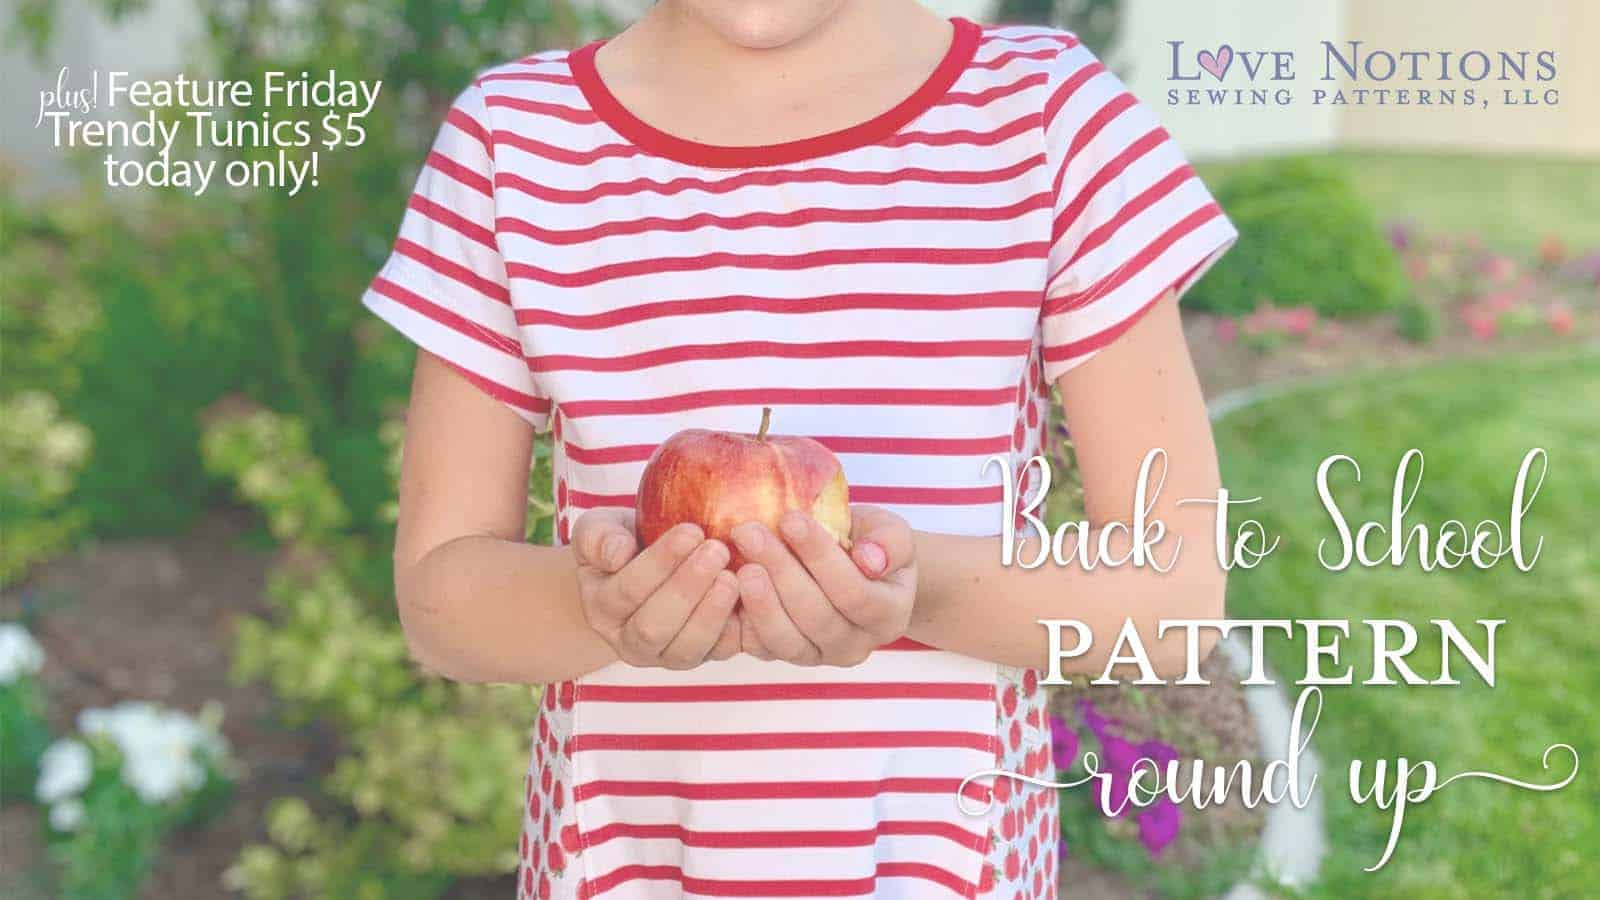 trendy tunic feature, back to school